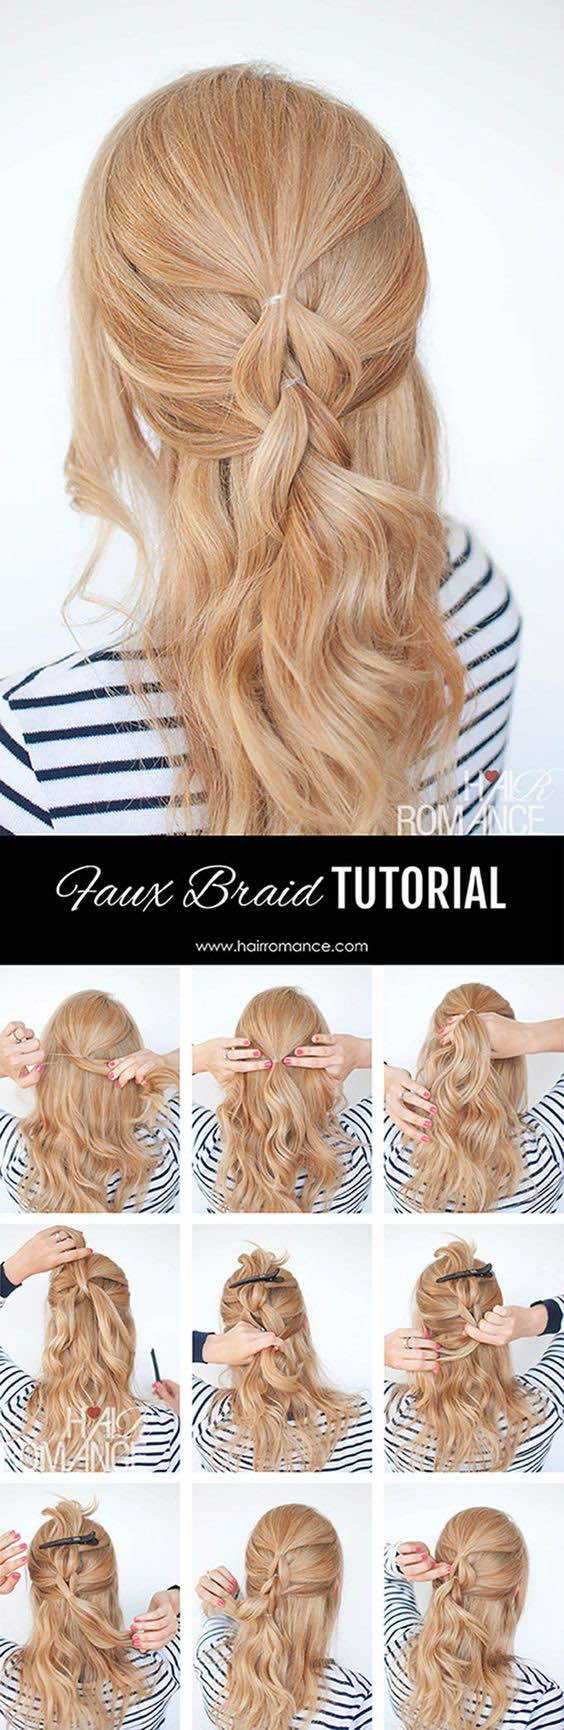 wedding hairstyle tutorial by hair romance modwedding